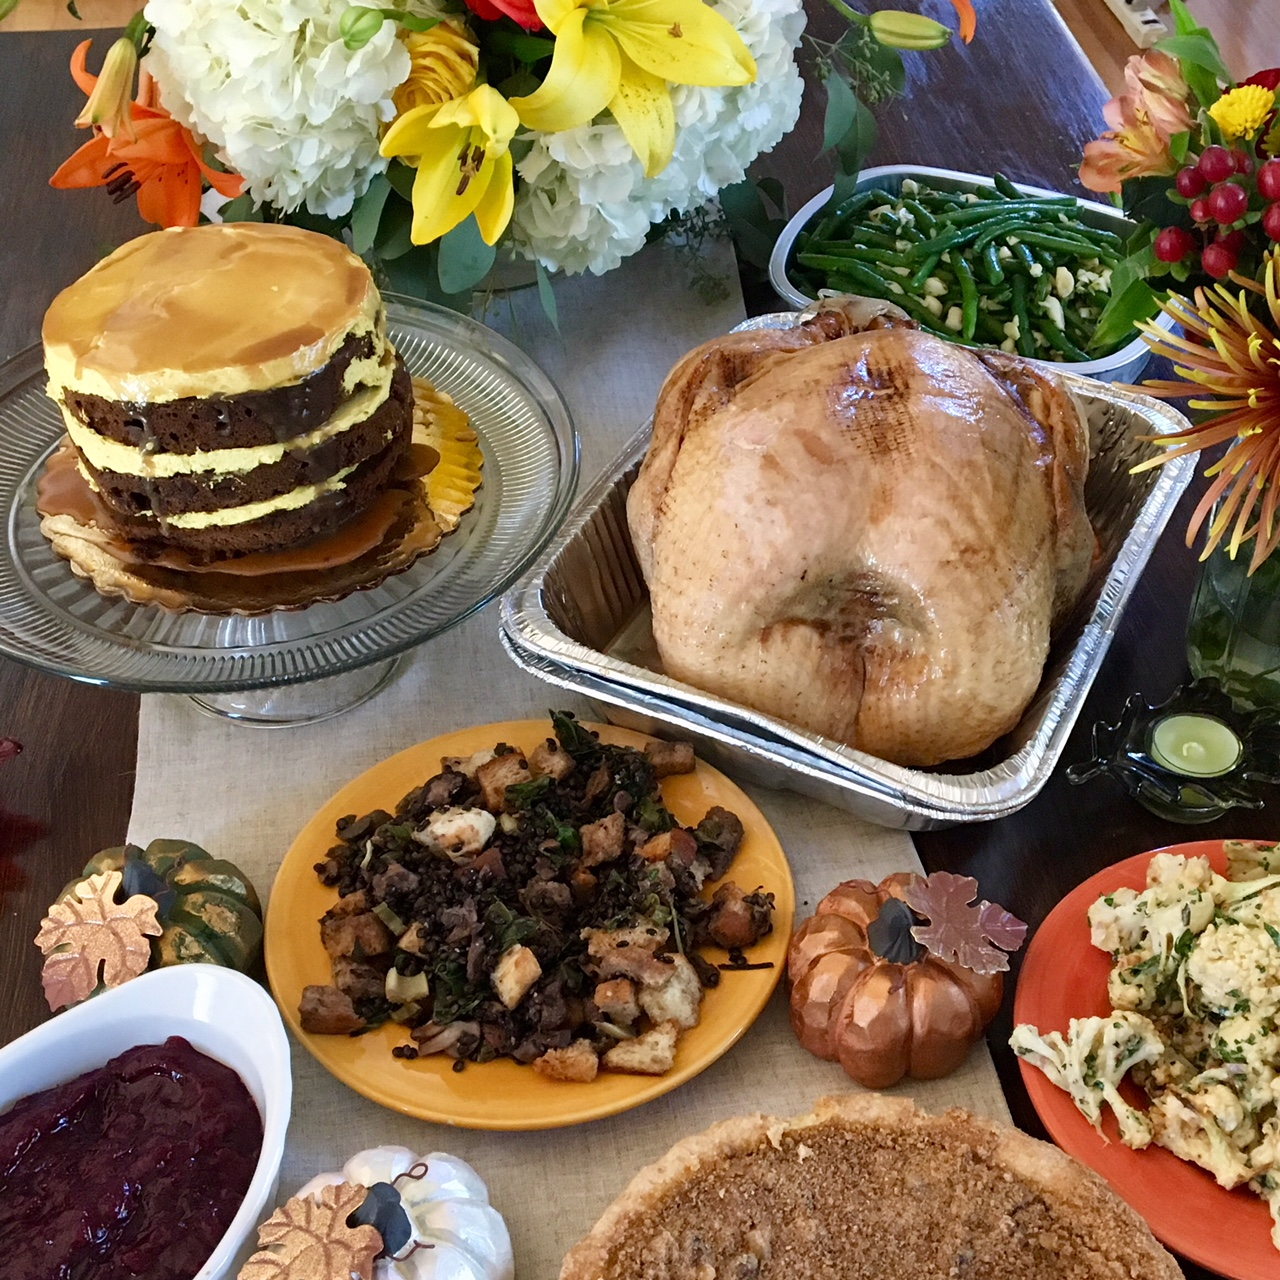 Home» Whole Foods Market» Menus By Occasion» Classic Christmas Dinner Menu Classic Christmas Dinner Menu Here's a traditional and elegant Christmas dinner menu that will welcome guests with homey aromas of roasting and baking.